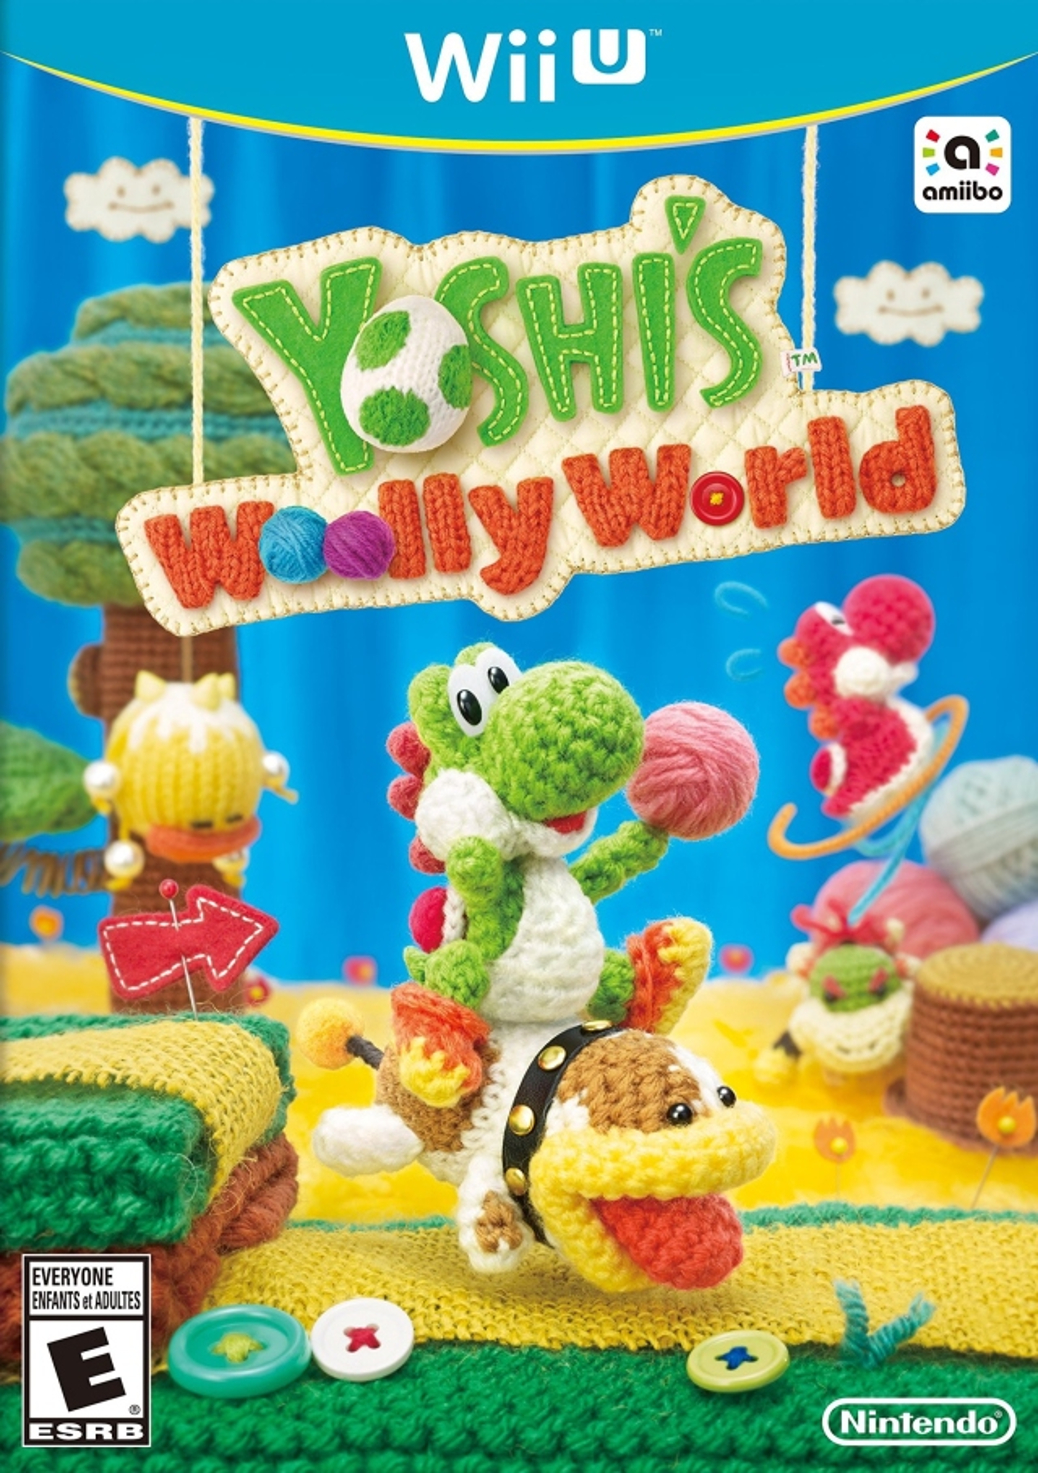 Yoshi's Woolly World - Wii U - North American Box Art